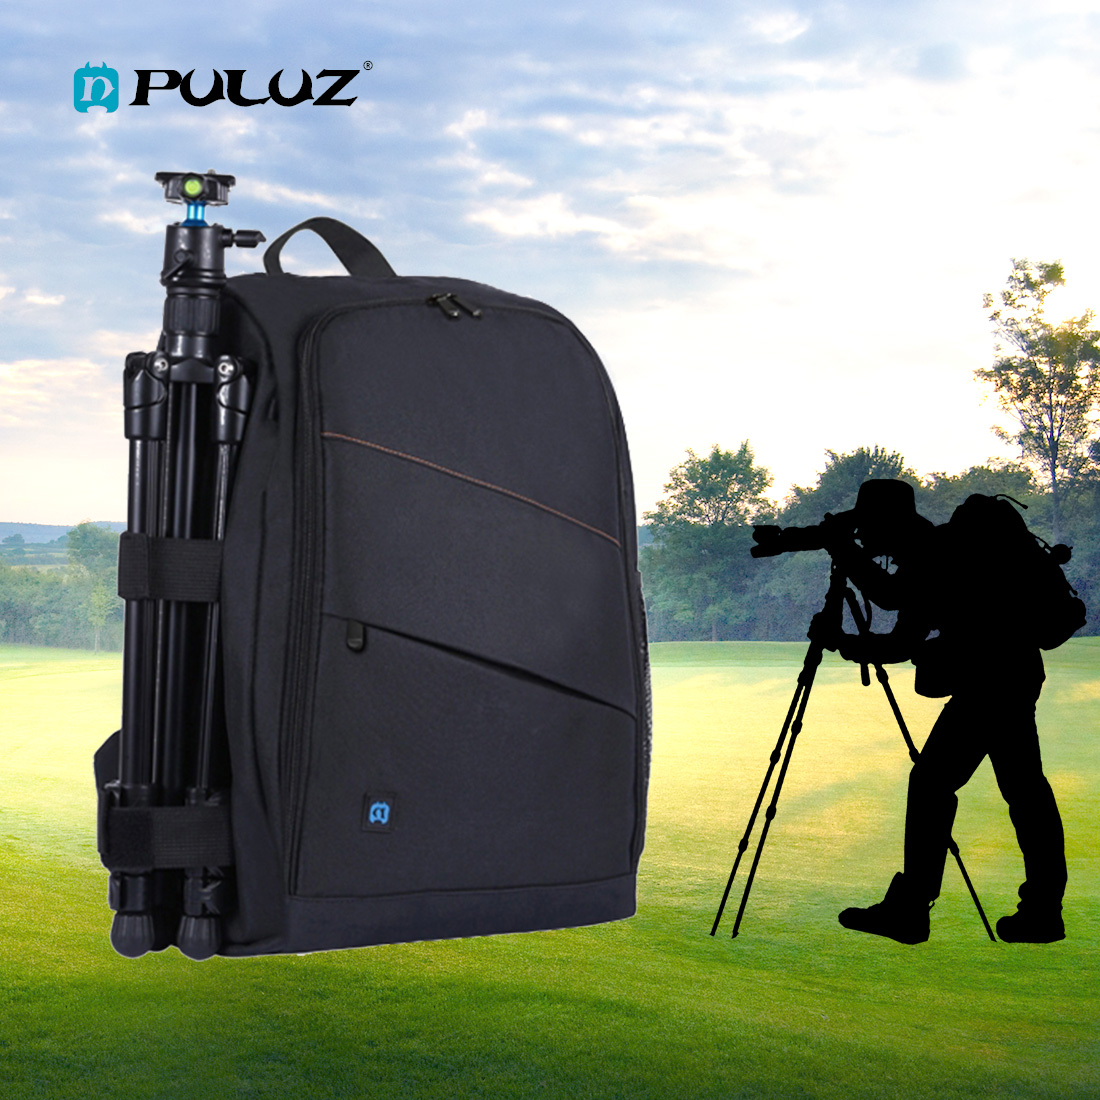 PULUZ Photo Backpack DSLR Bag Tripod Bag Outdoor Portable Waterproof Camera Photography Sac Appareil Reflex Black Sac appareil